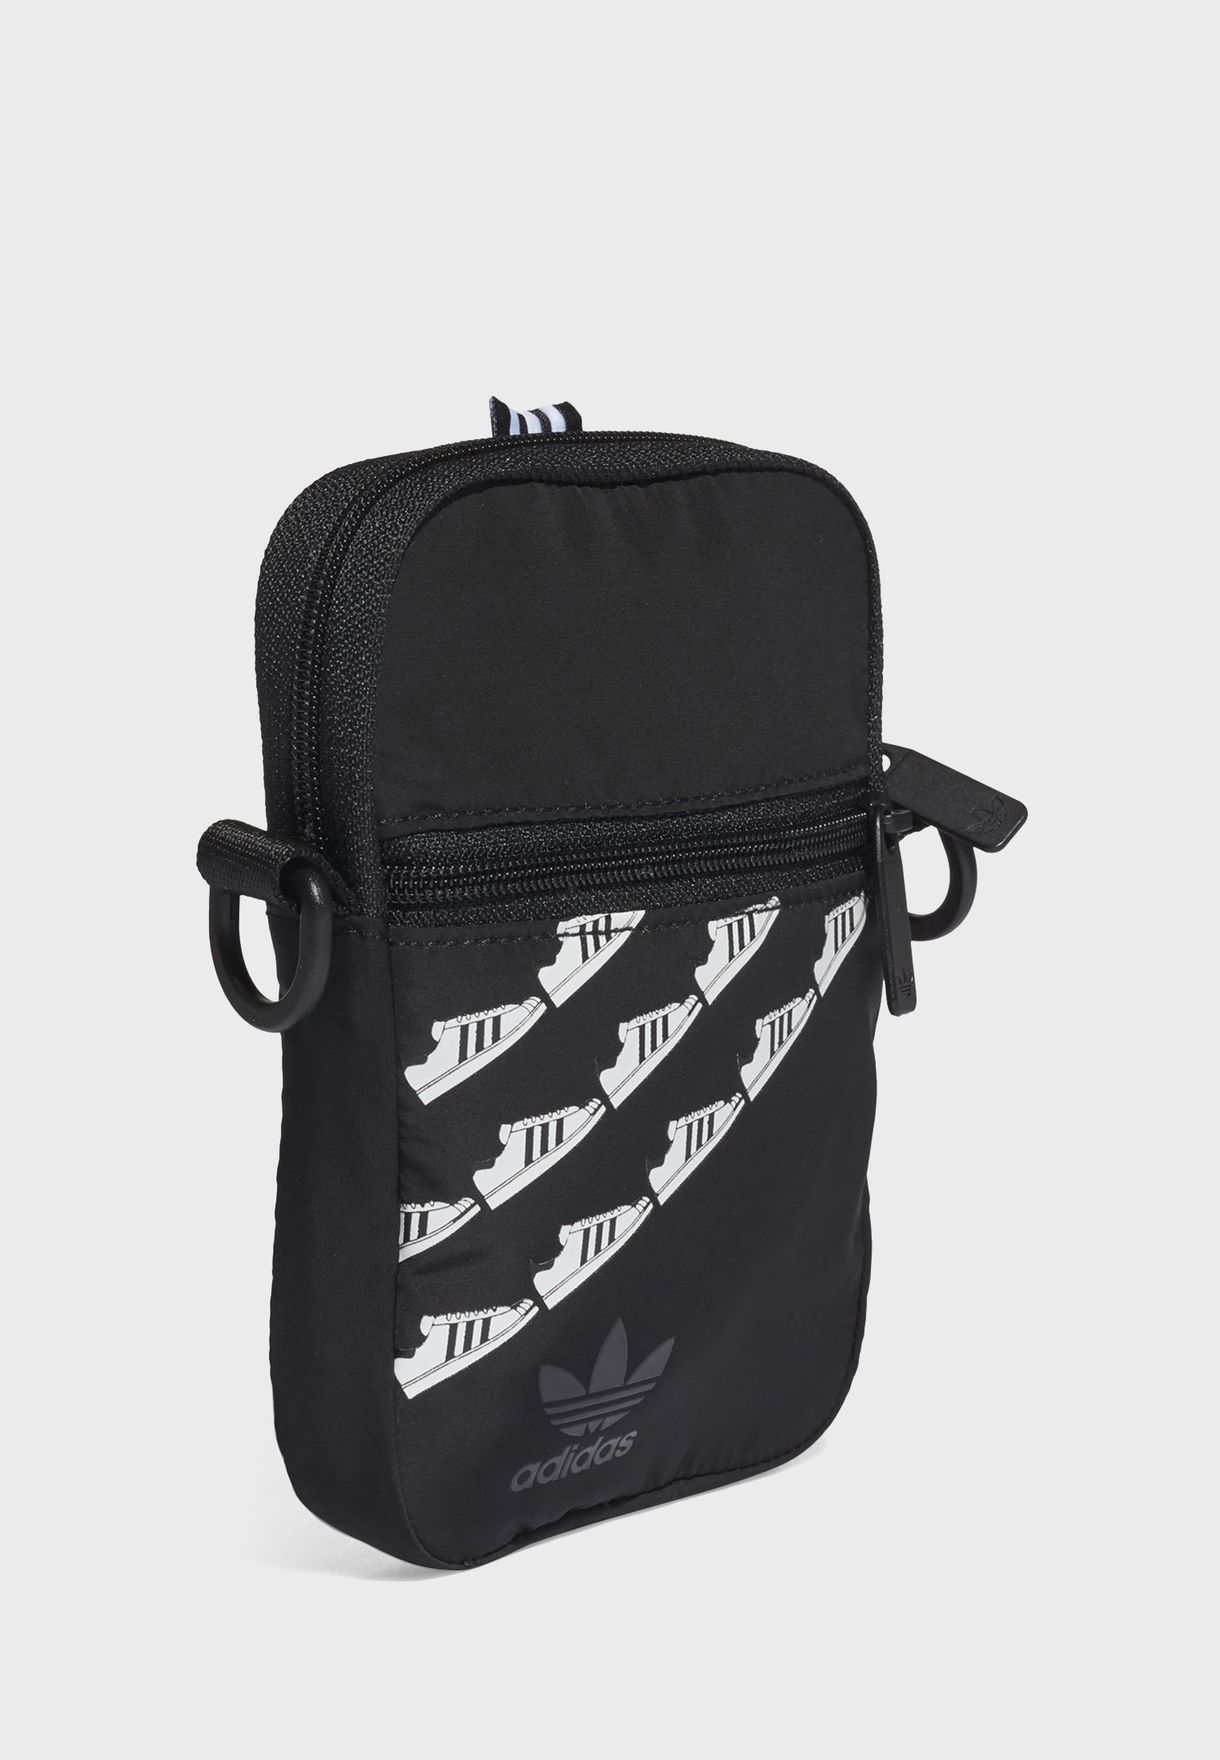 Festival Graphics Casual Unisex Shoulder Bag